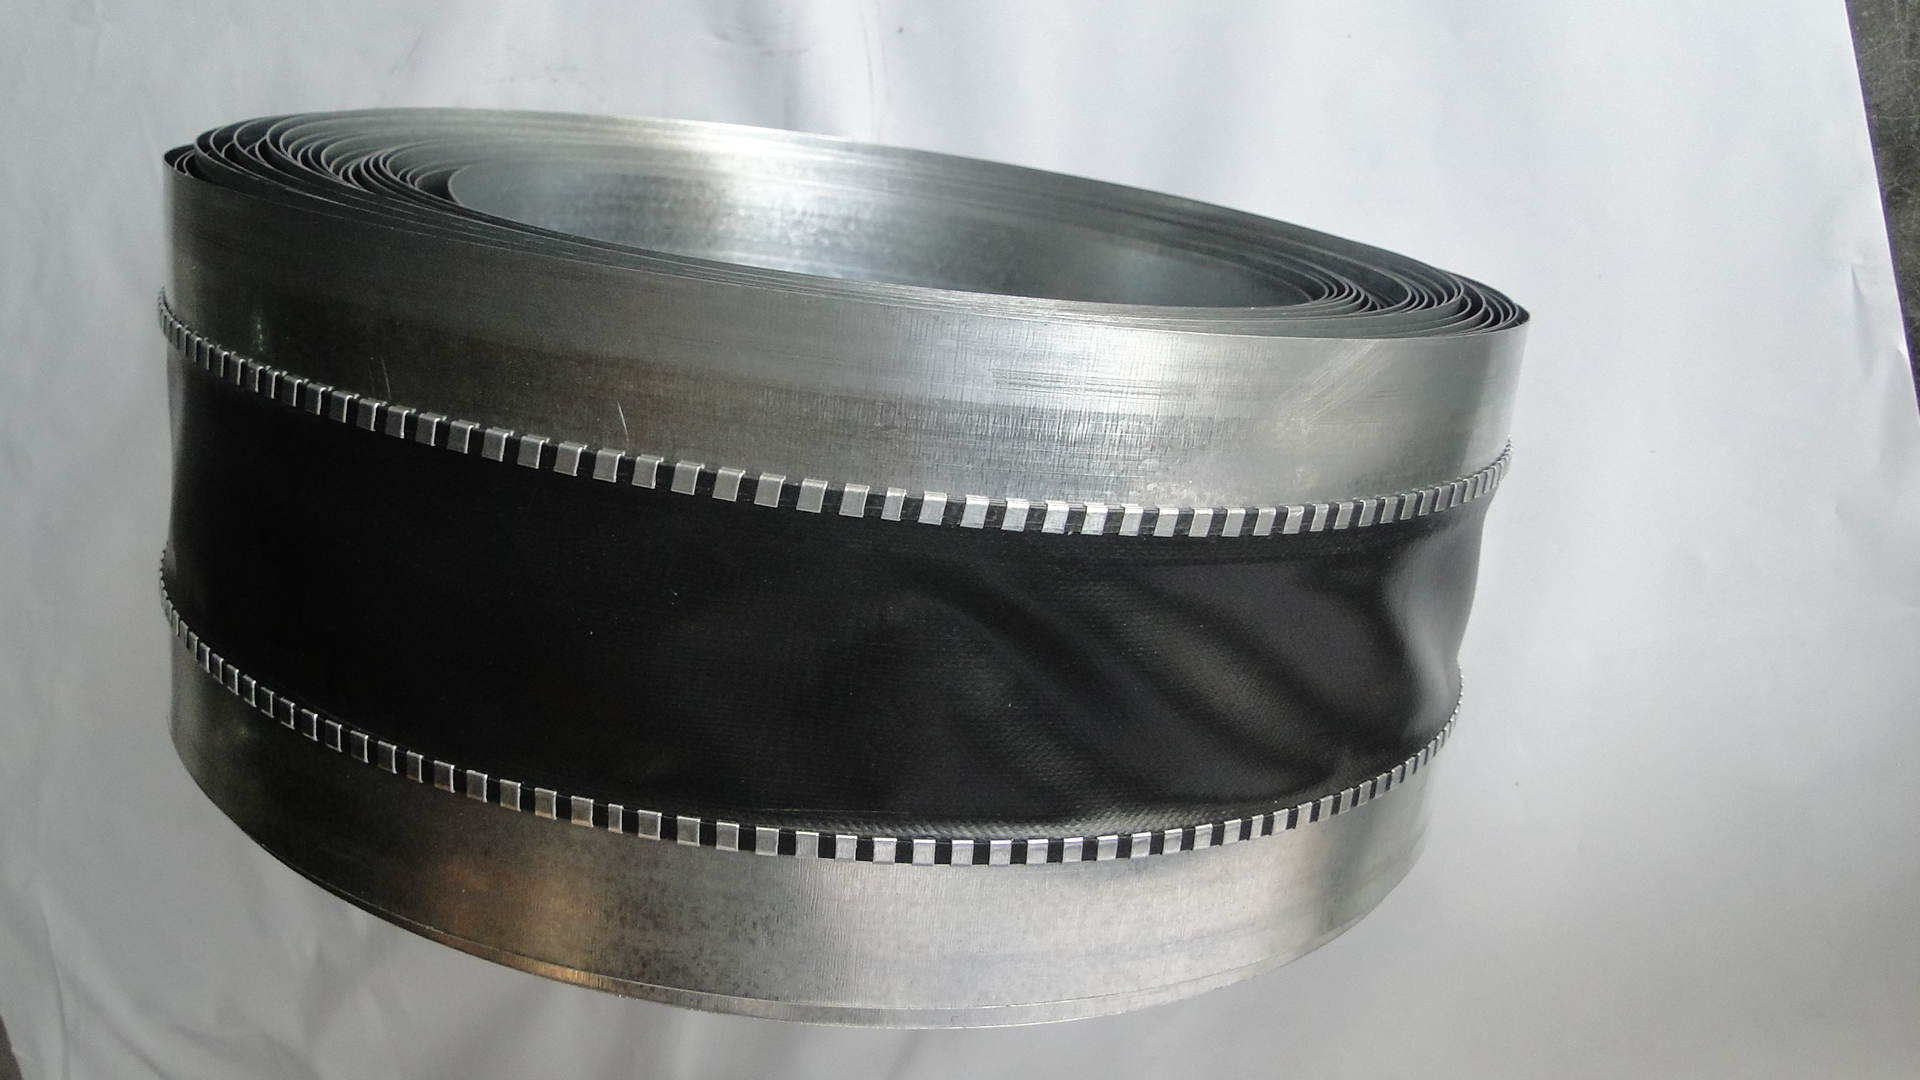 Airmaster Flexible Duct Connector Adhesive Tape